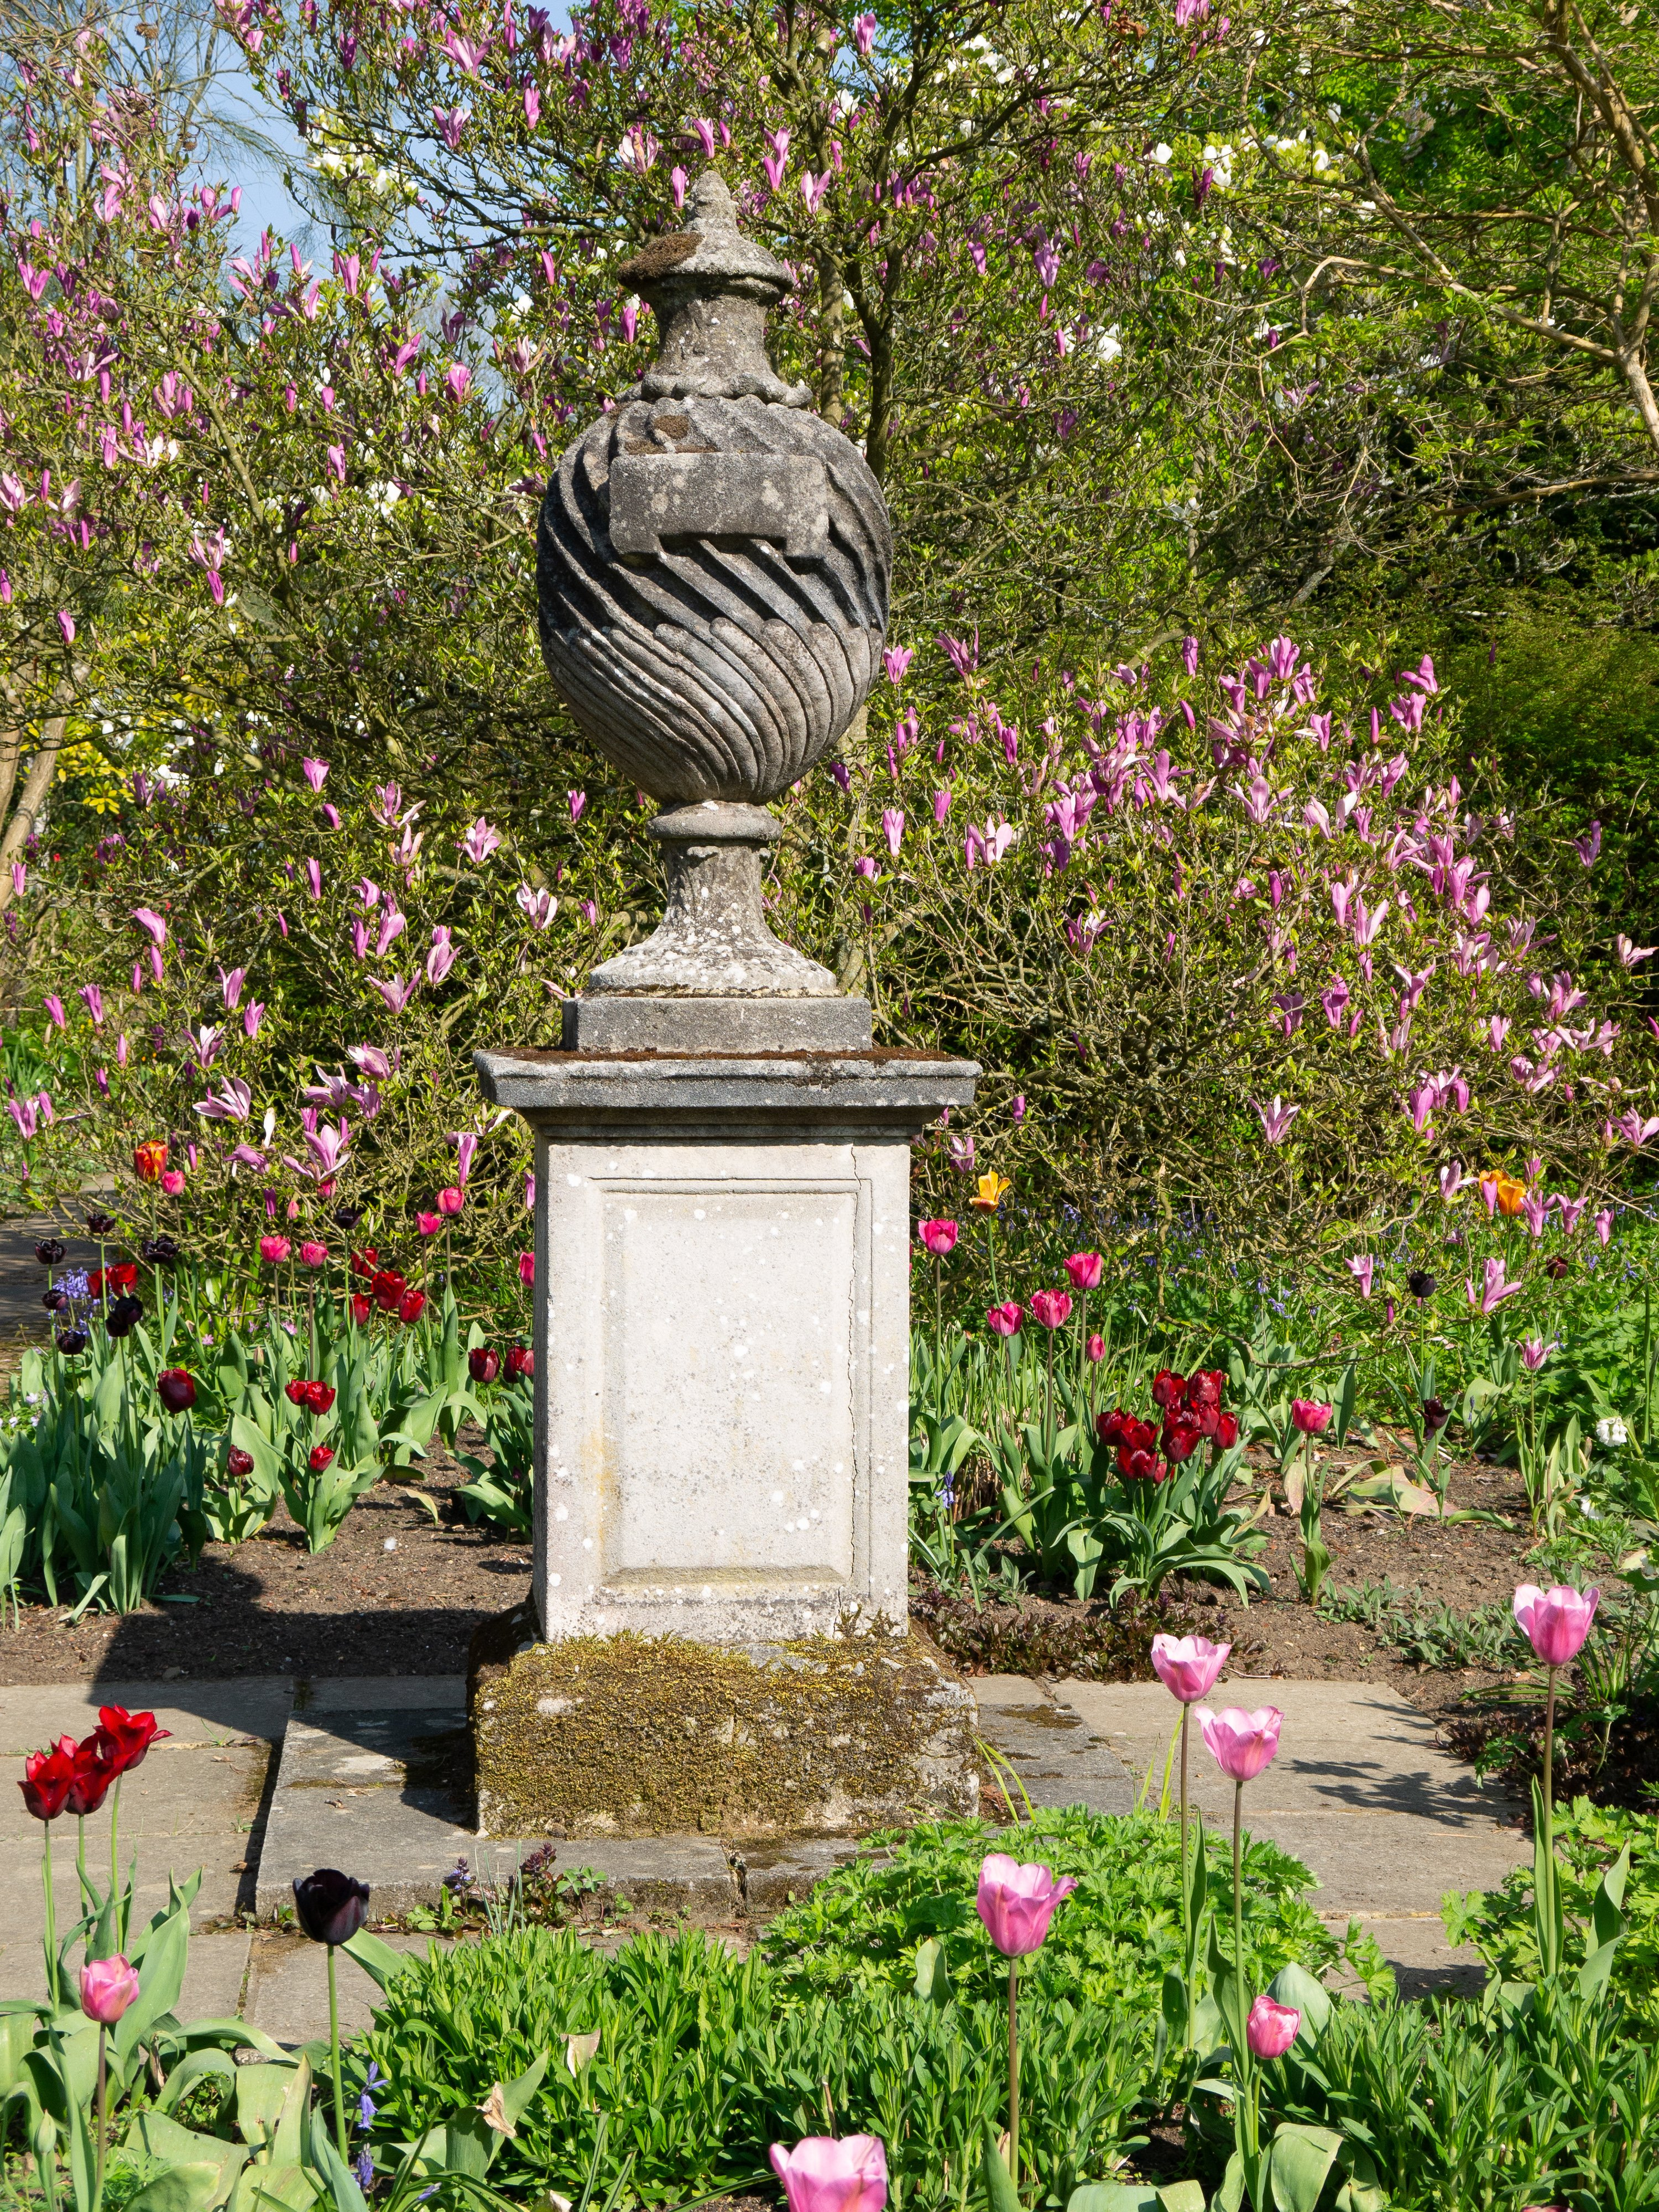 Pope's Garden Urn and pedestal amongst magnolia and tulips at Great Comp Garden